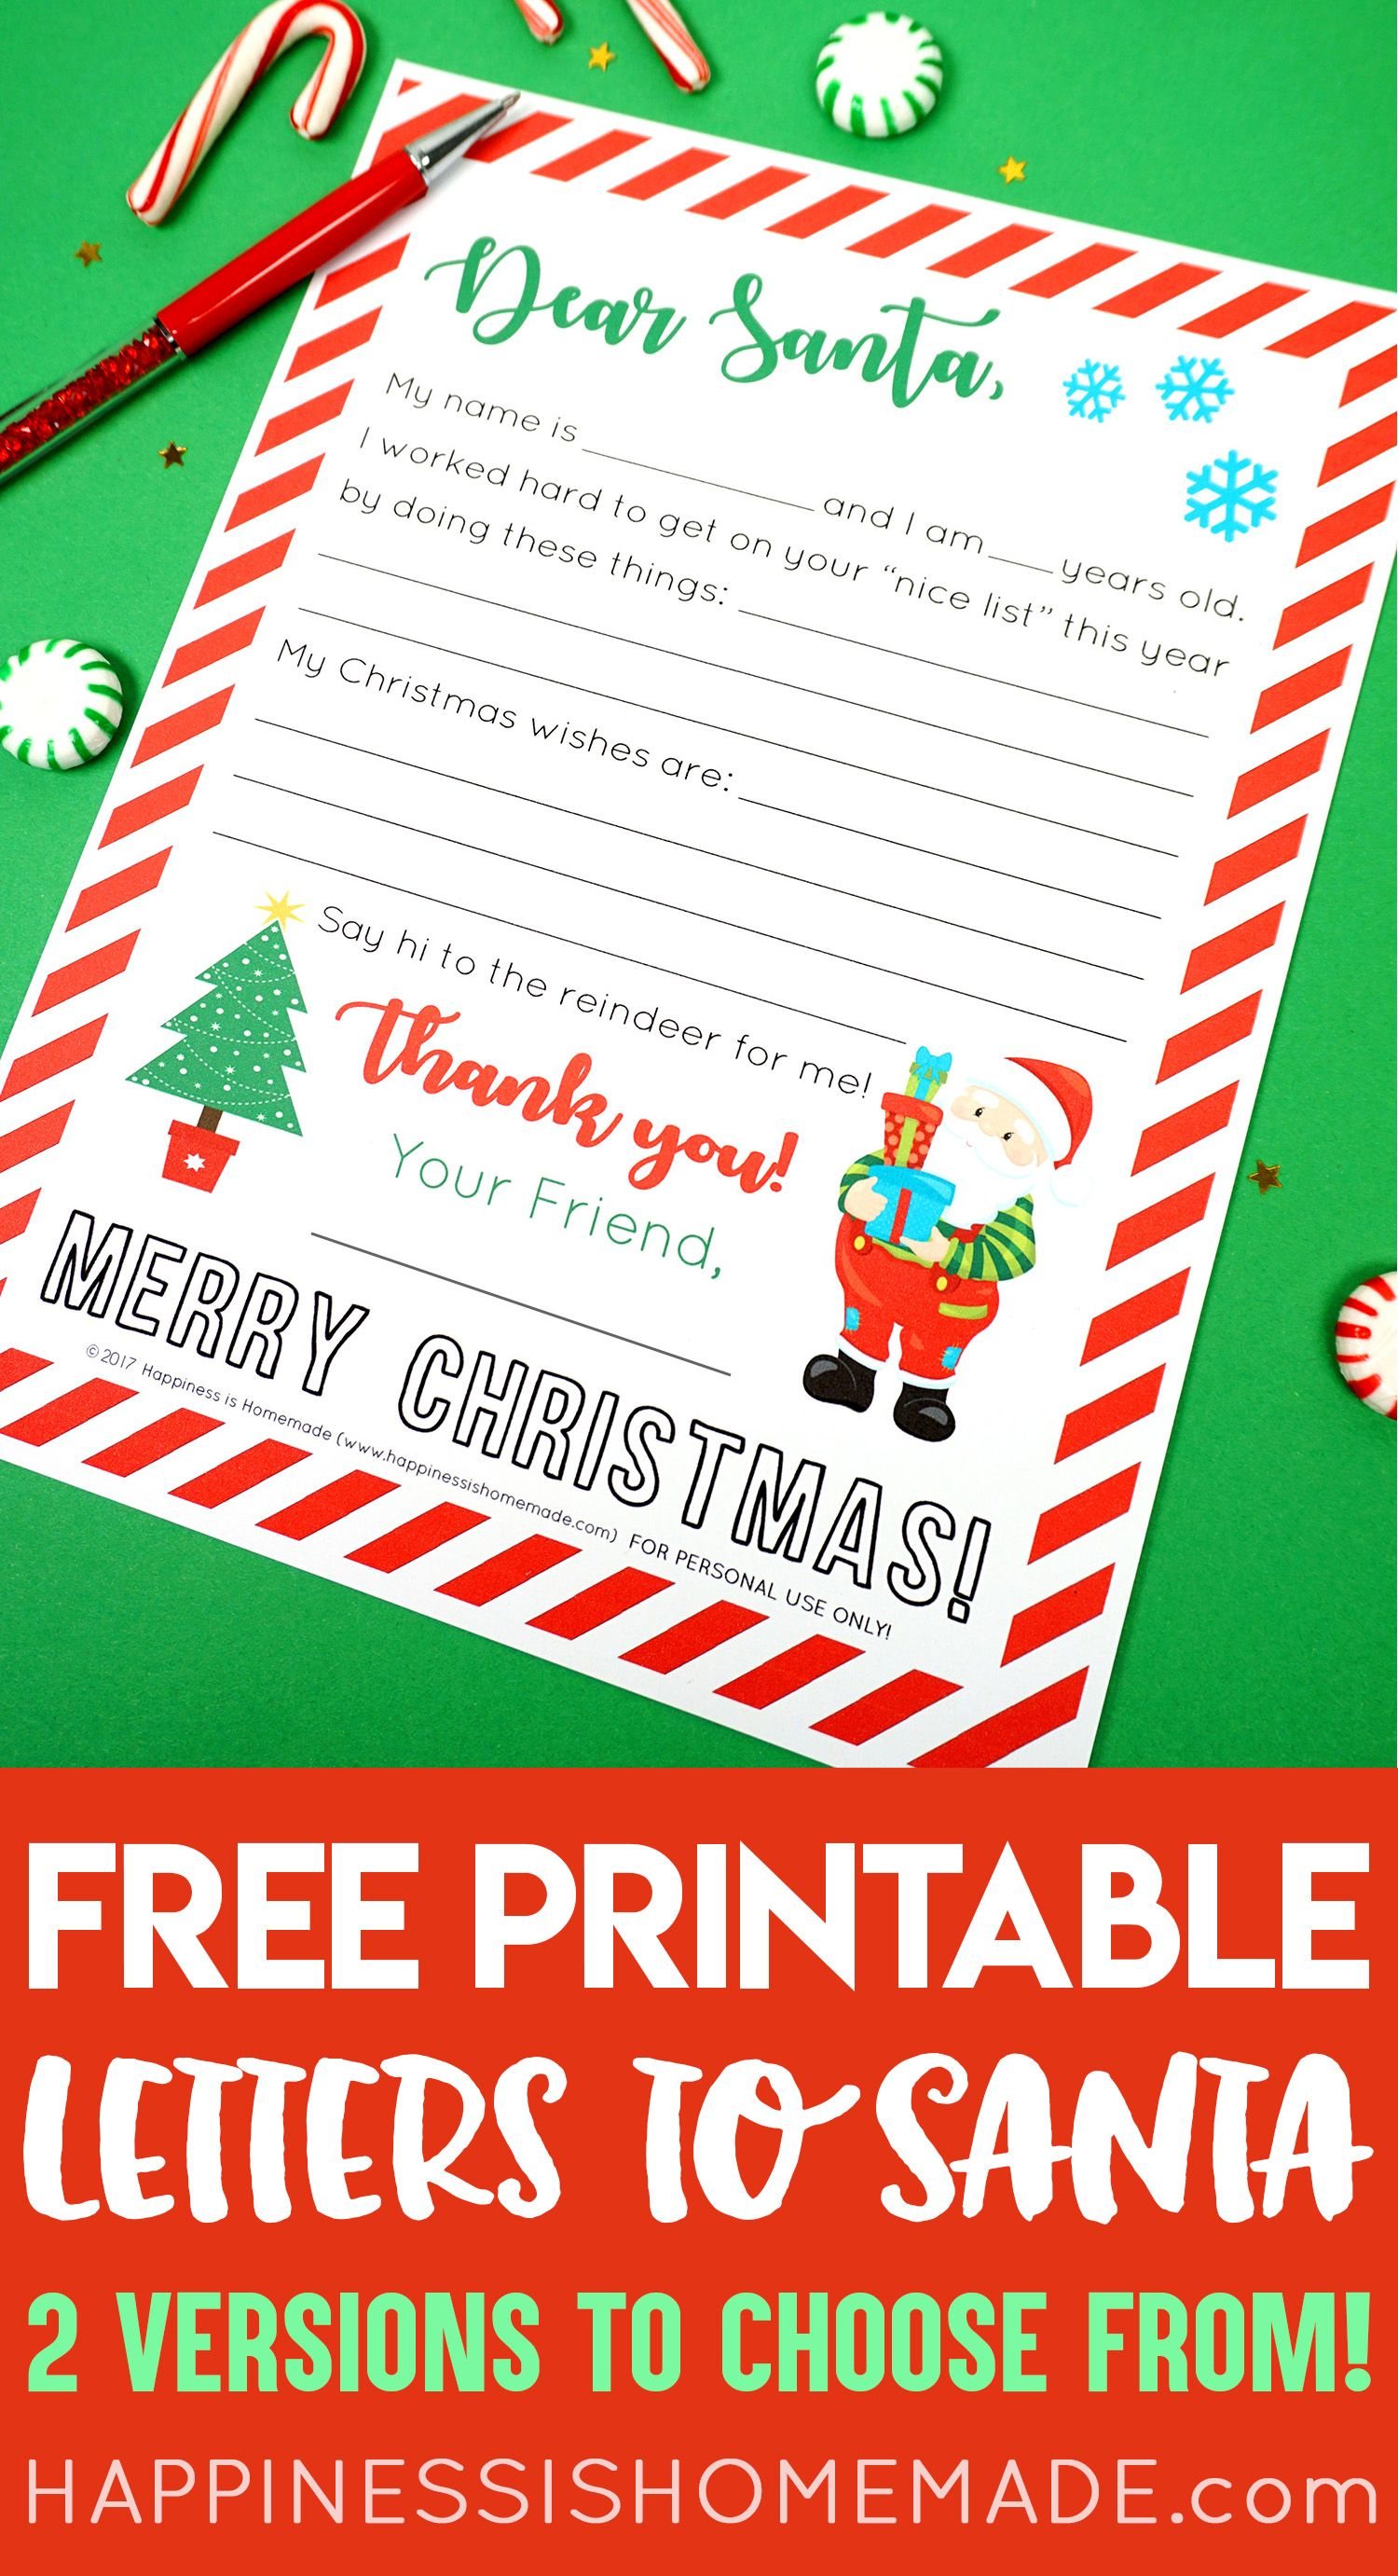 Letter To Santa Printables These Cute Printable Letter To Santa Templates Making Writing Santa Letter Template Santa Letter Printable Free Letters From Santa